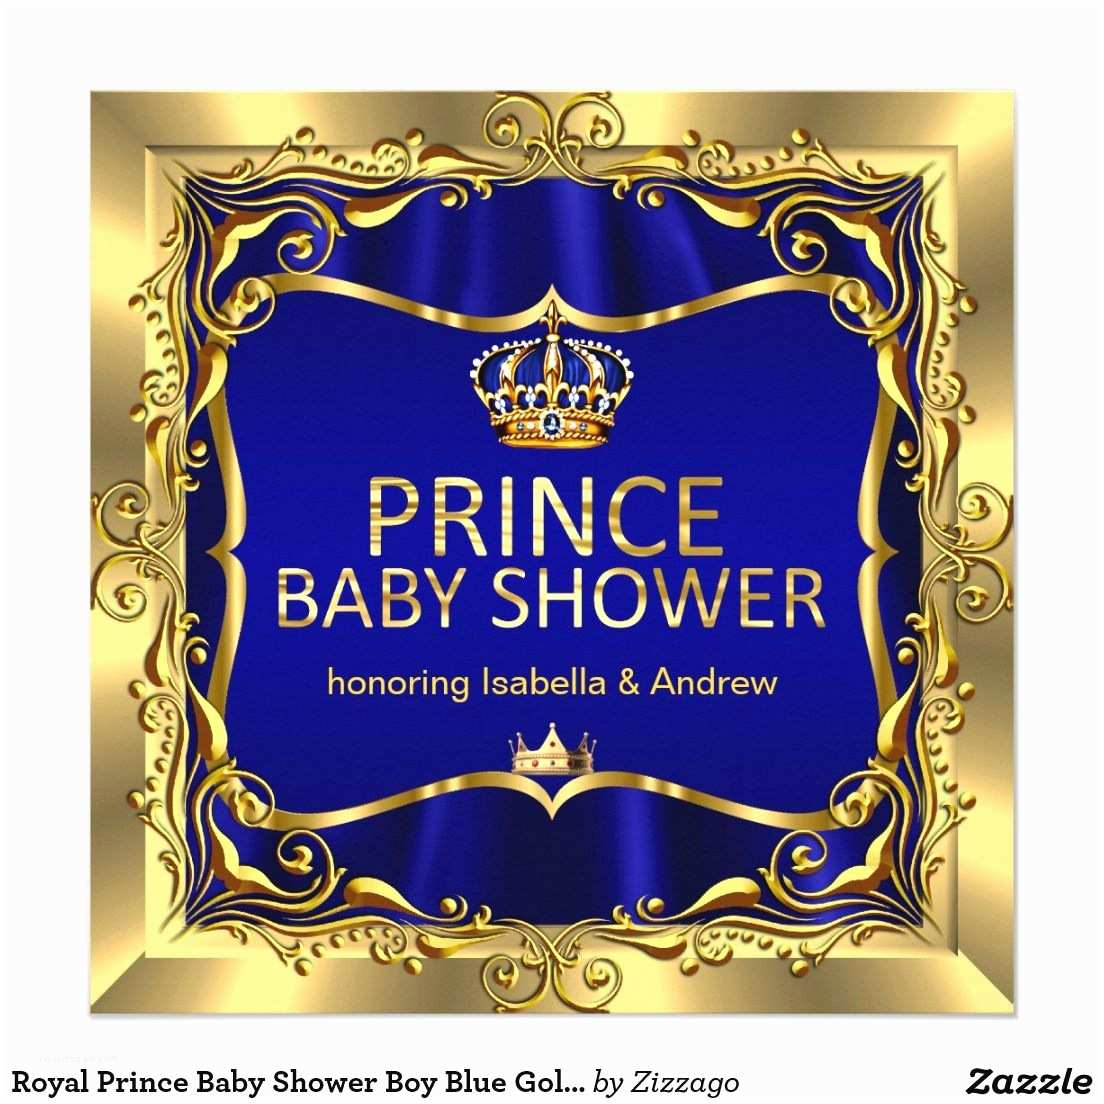 Prince Baby Shower Invitations Royal Prince Baby Shower Boy Blue Gold Invitation